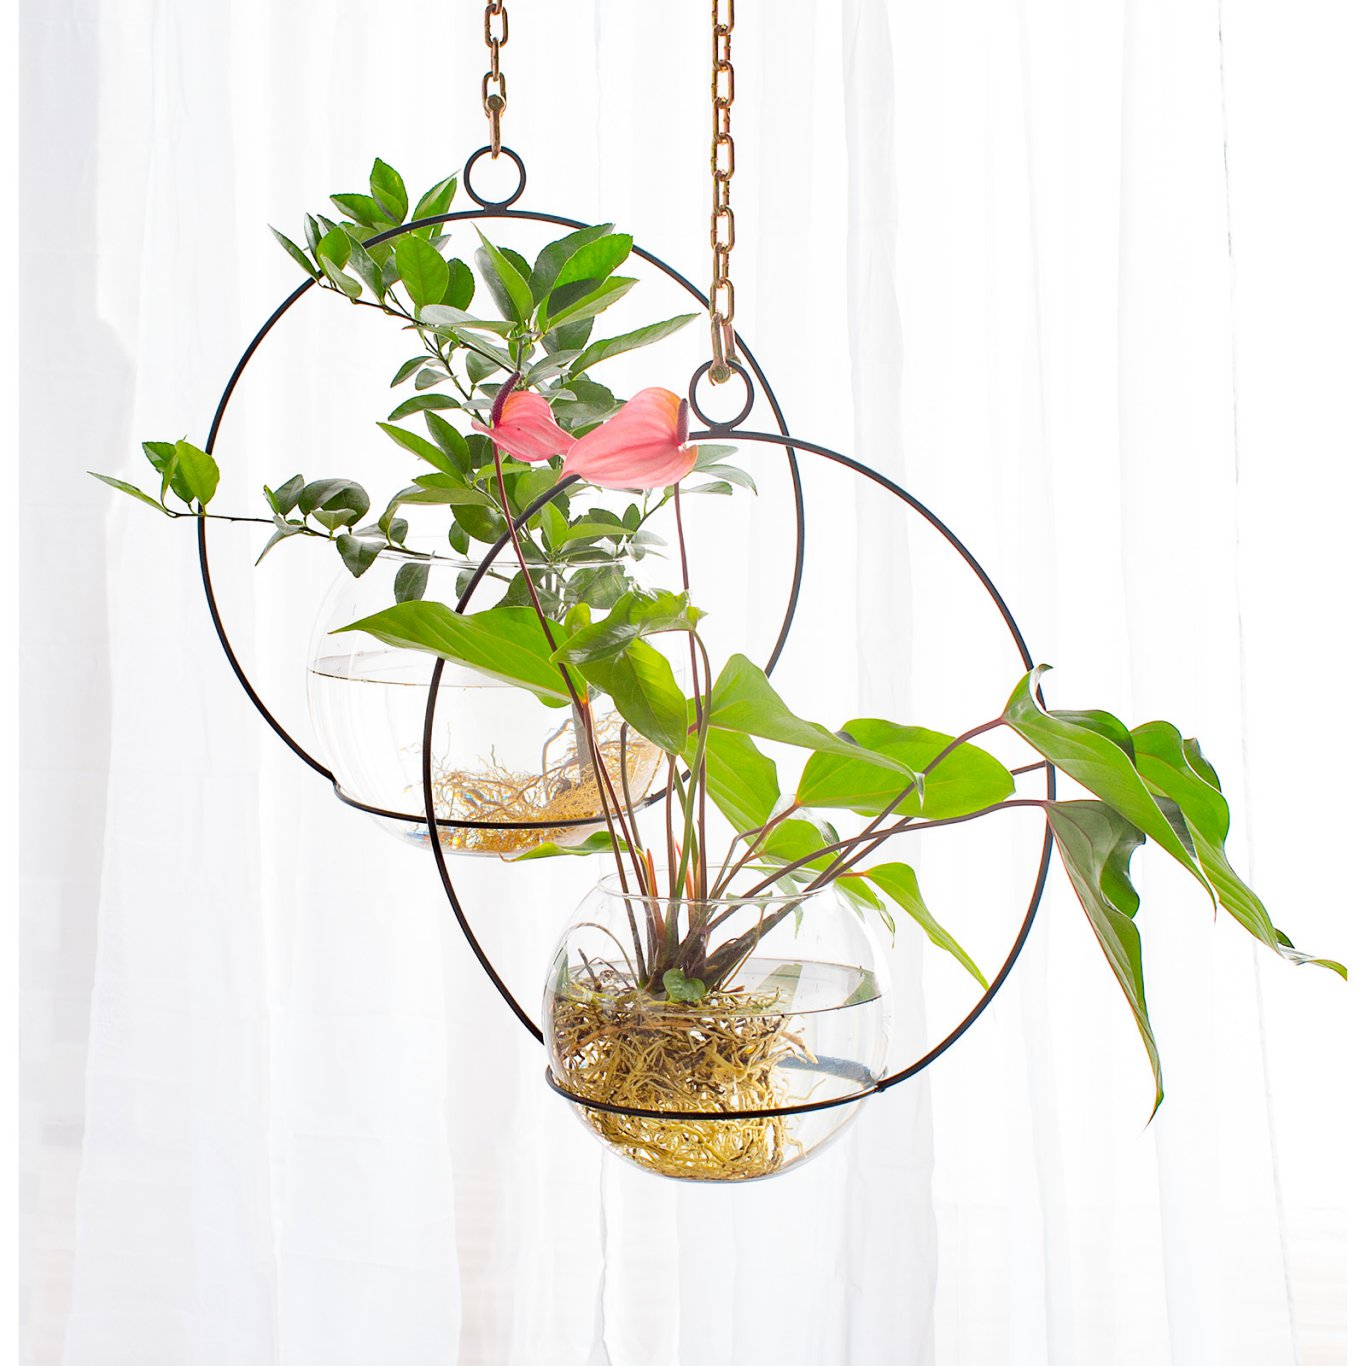 Where to Buy Hanging Hoop Planters